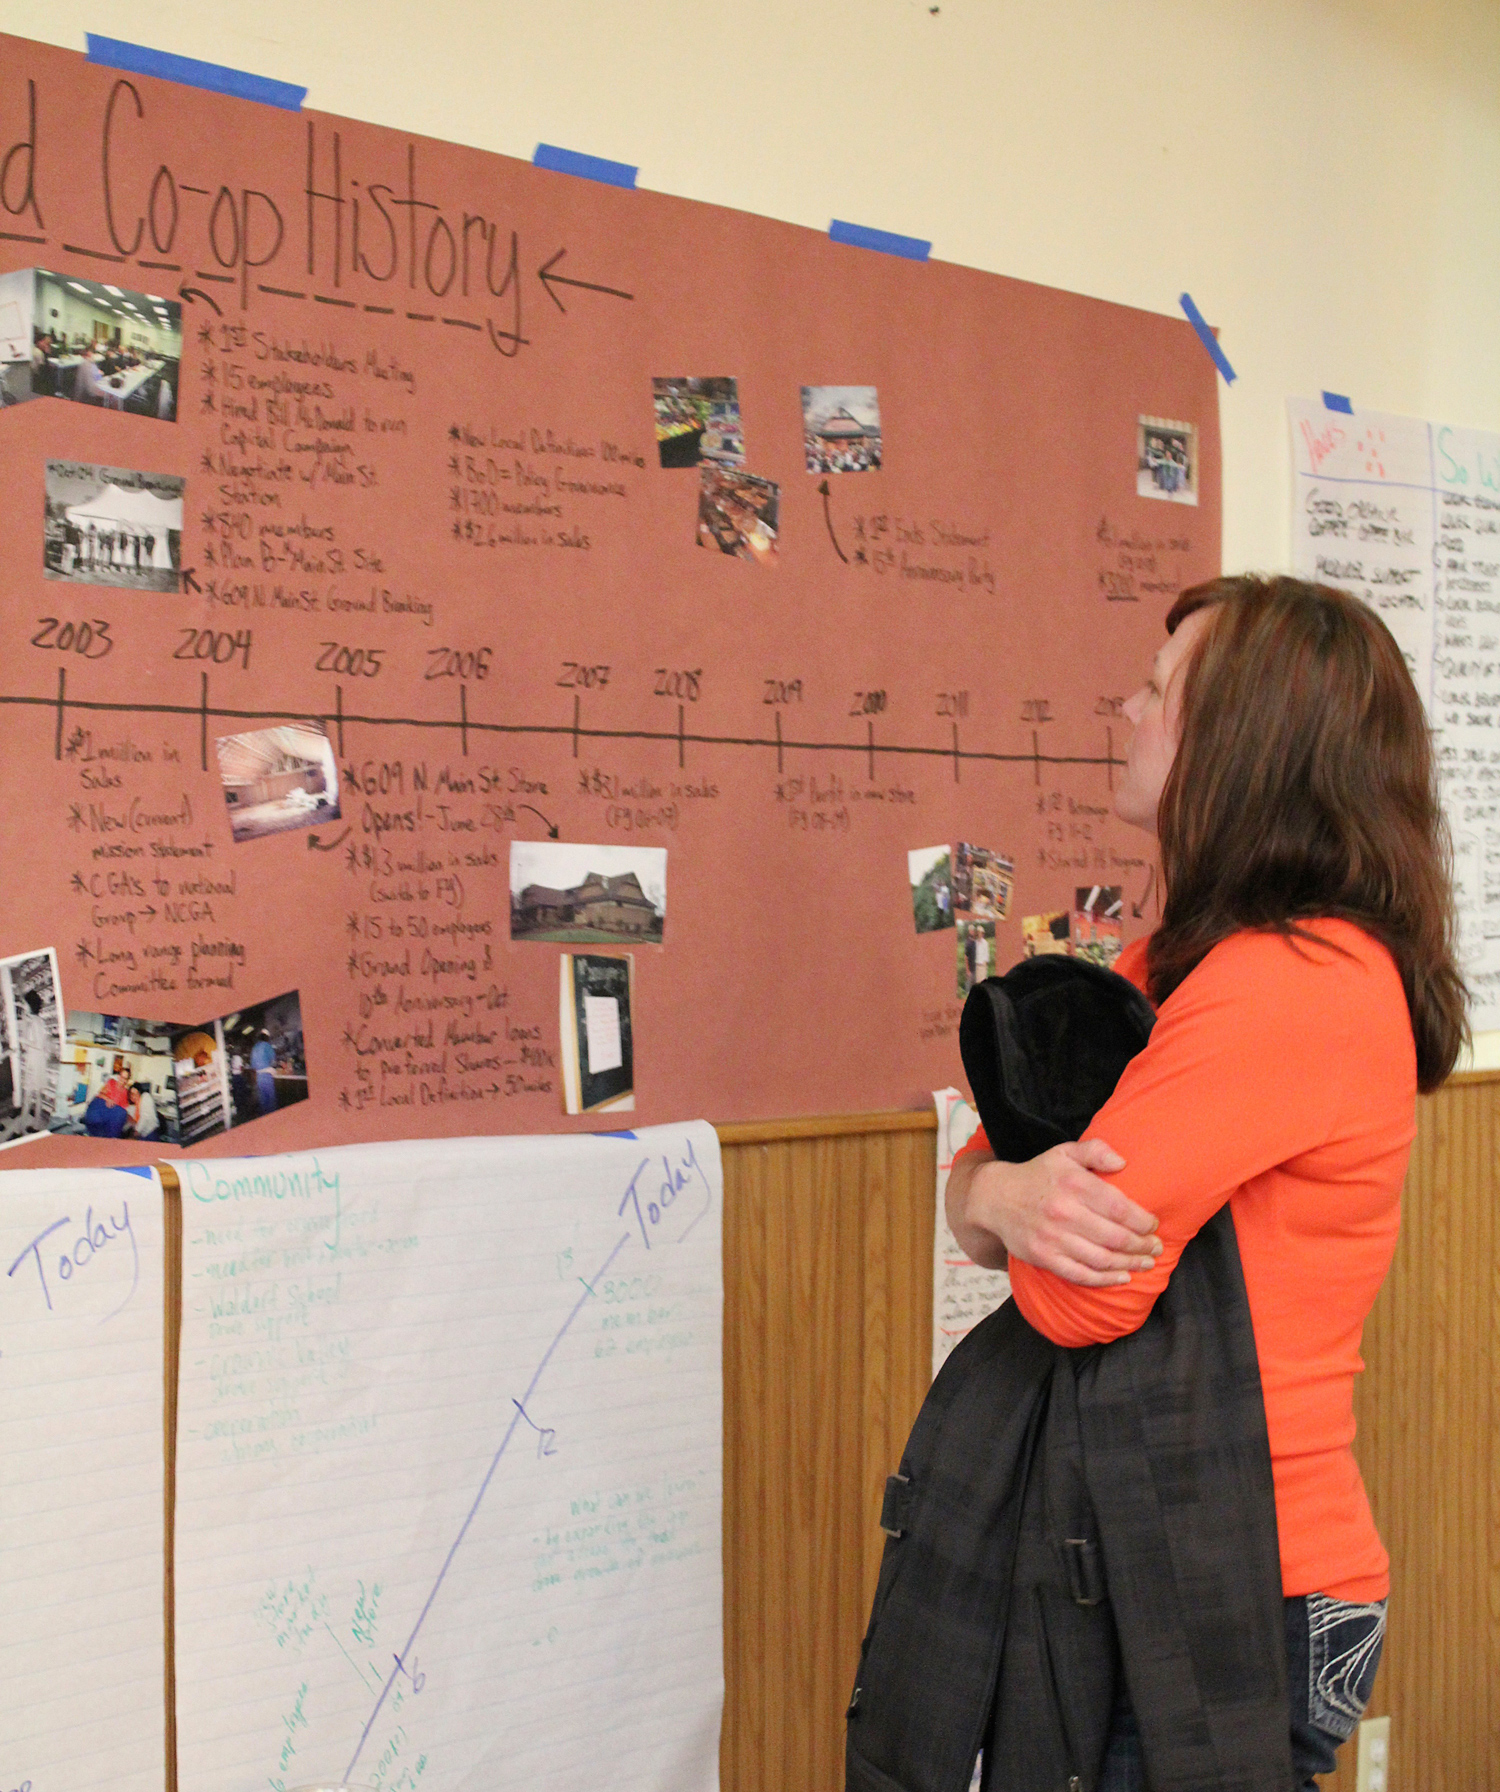 Emily Rozeske, Executive Director of the Viroqua Chamber Main Street, takes a closer look at the VFC timeline.